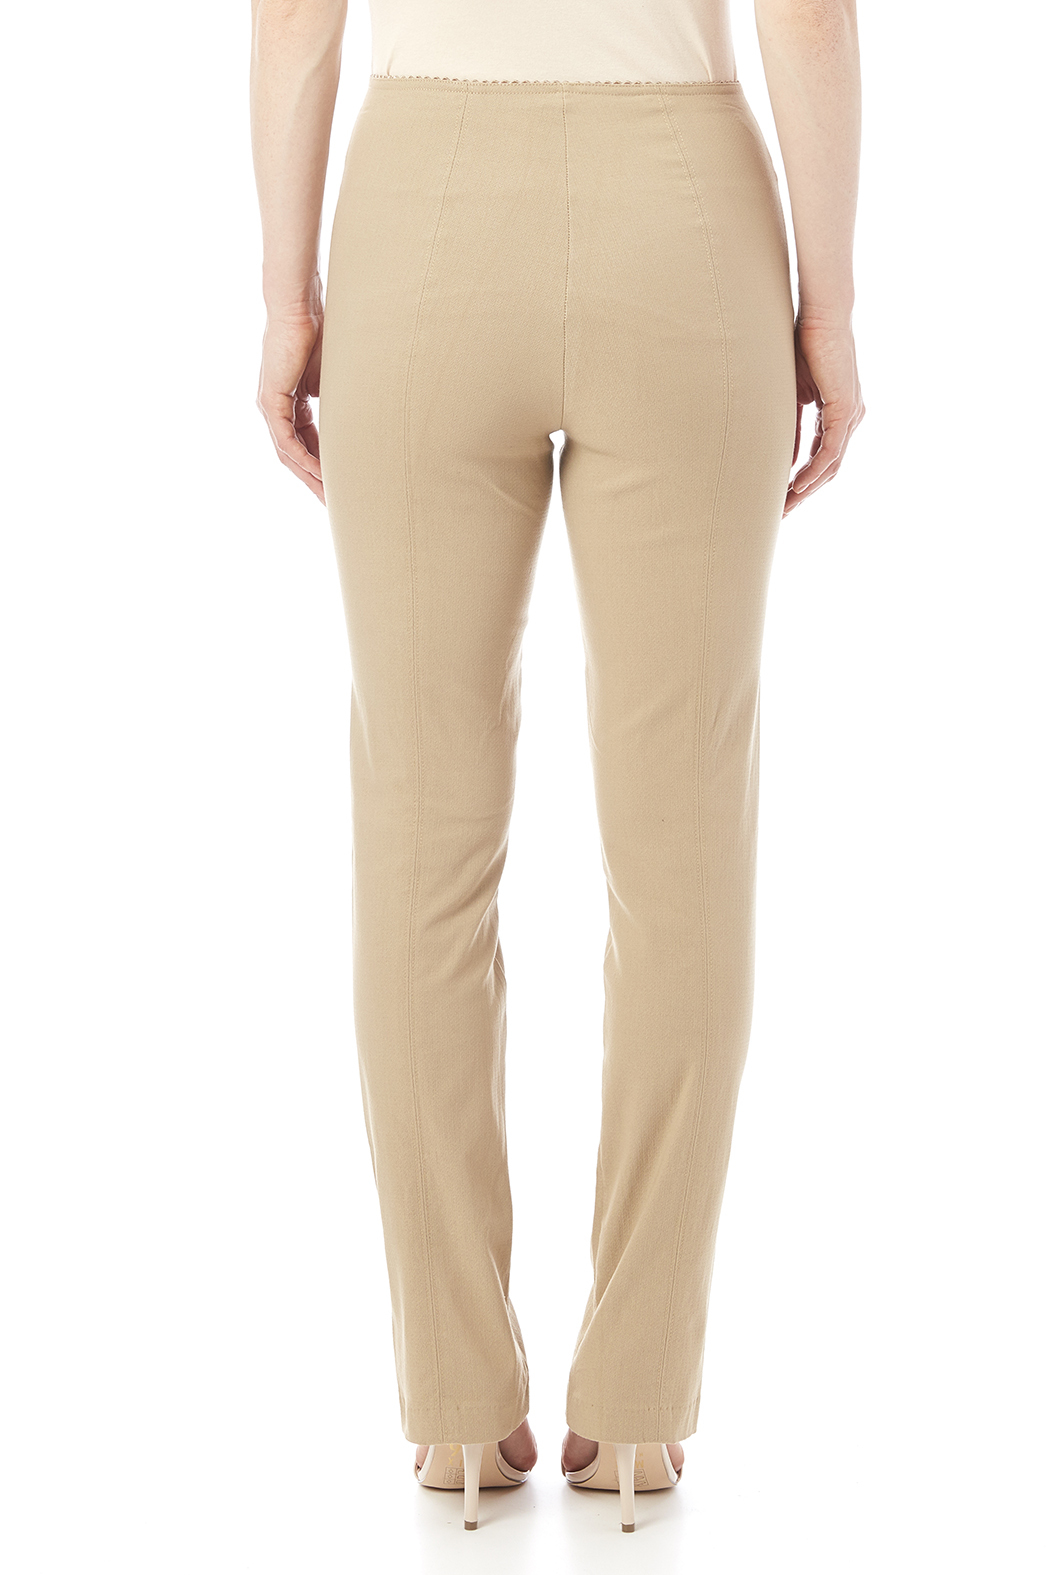 Mesmerize Tapered Leg Pant - Back Cropped Image